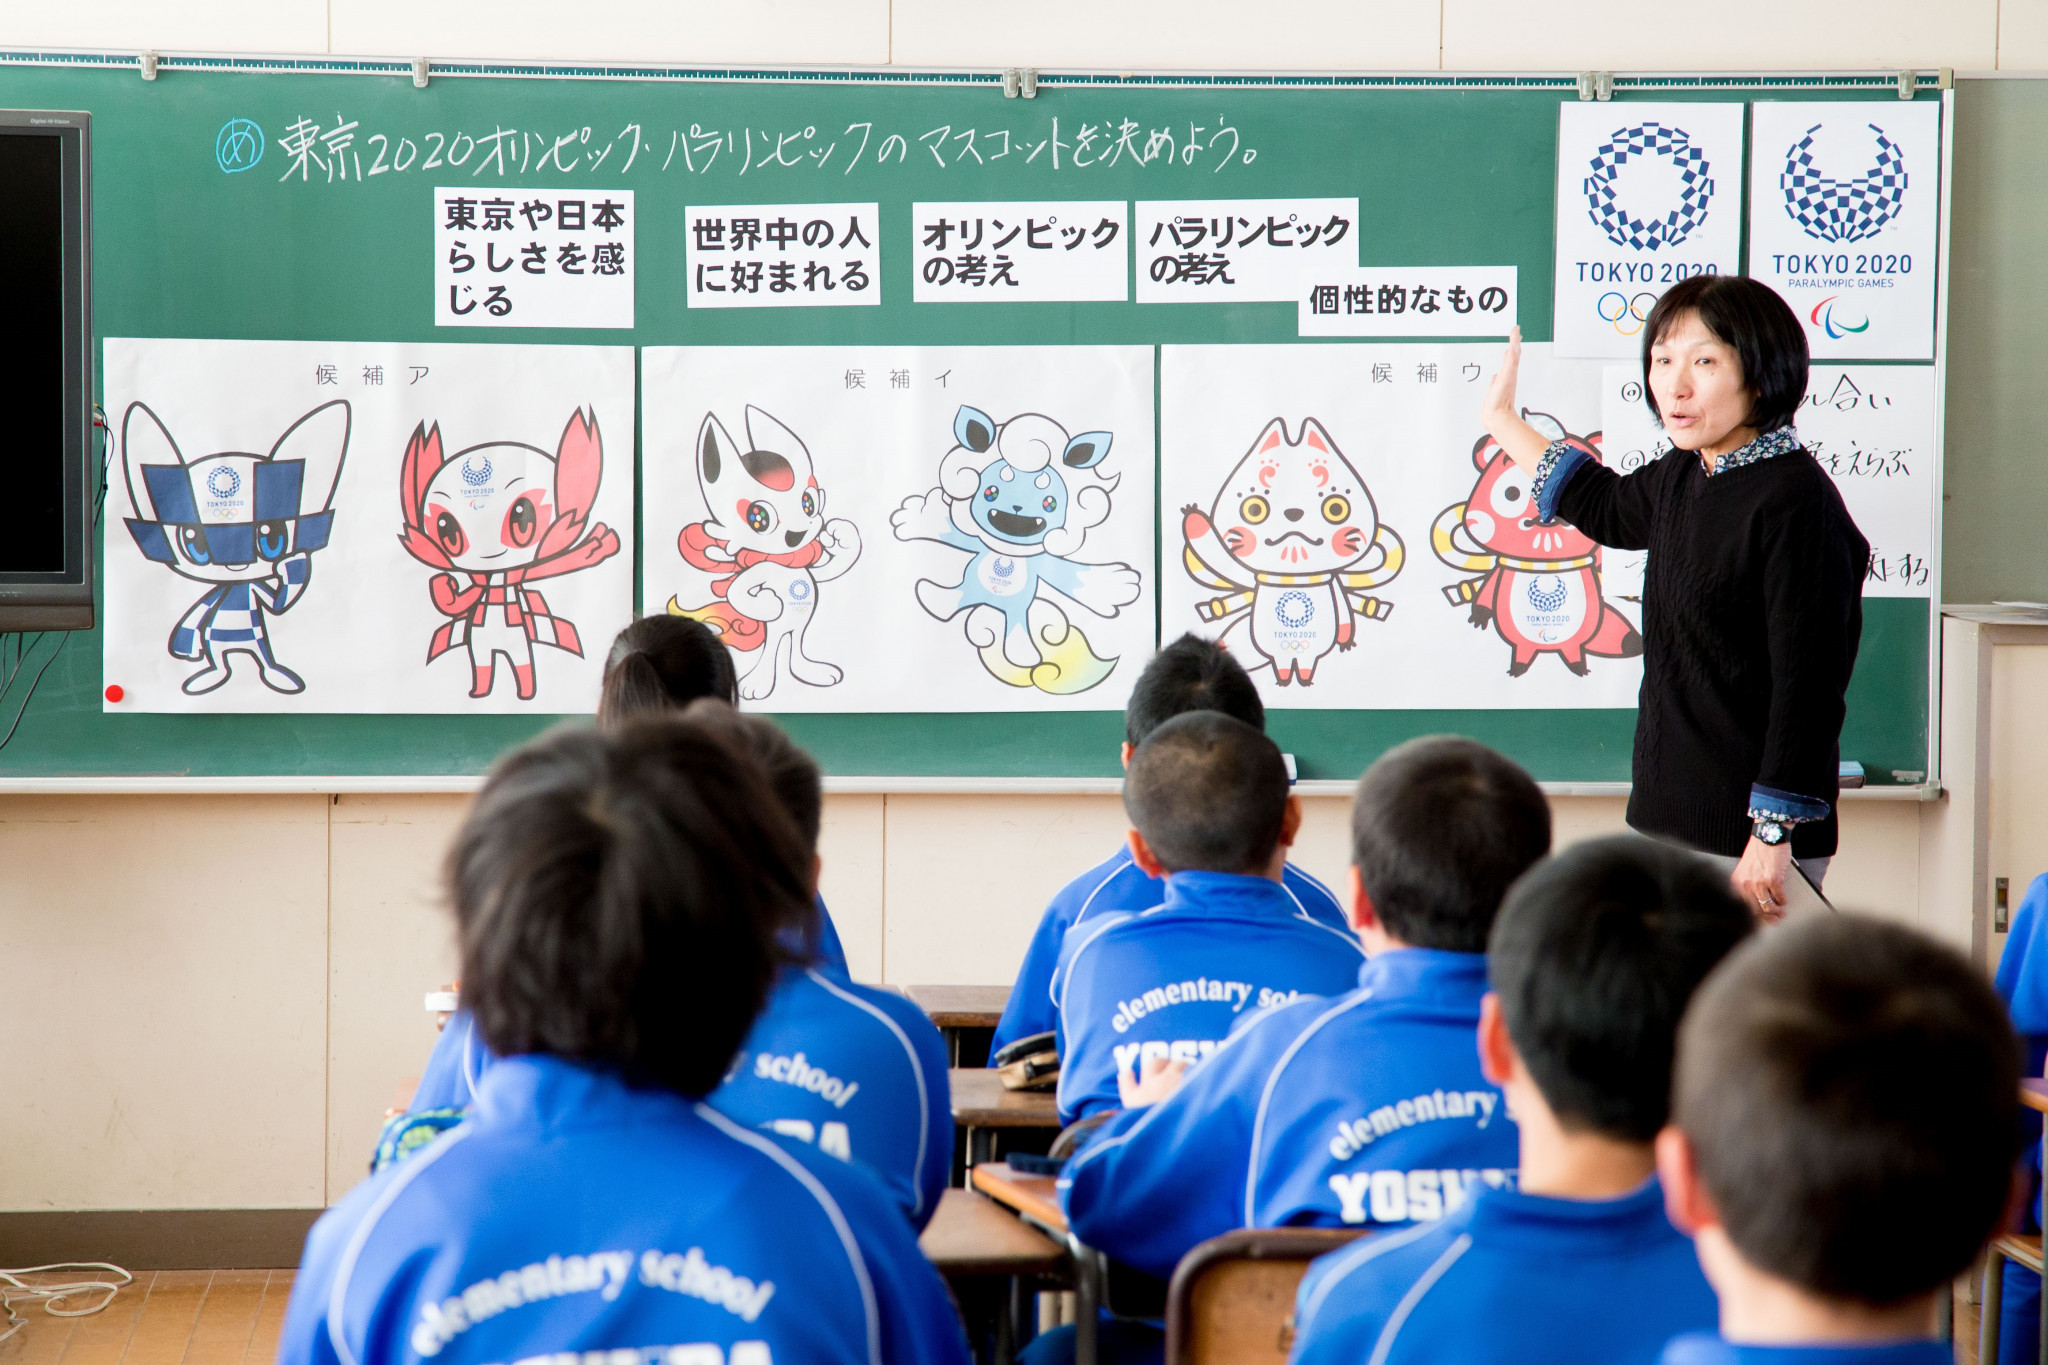 Lesson plans have been sent to schools which they can use to explain the role of mascots, as well as the Olympic and Paralympic values ©Tokyo 2020